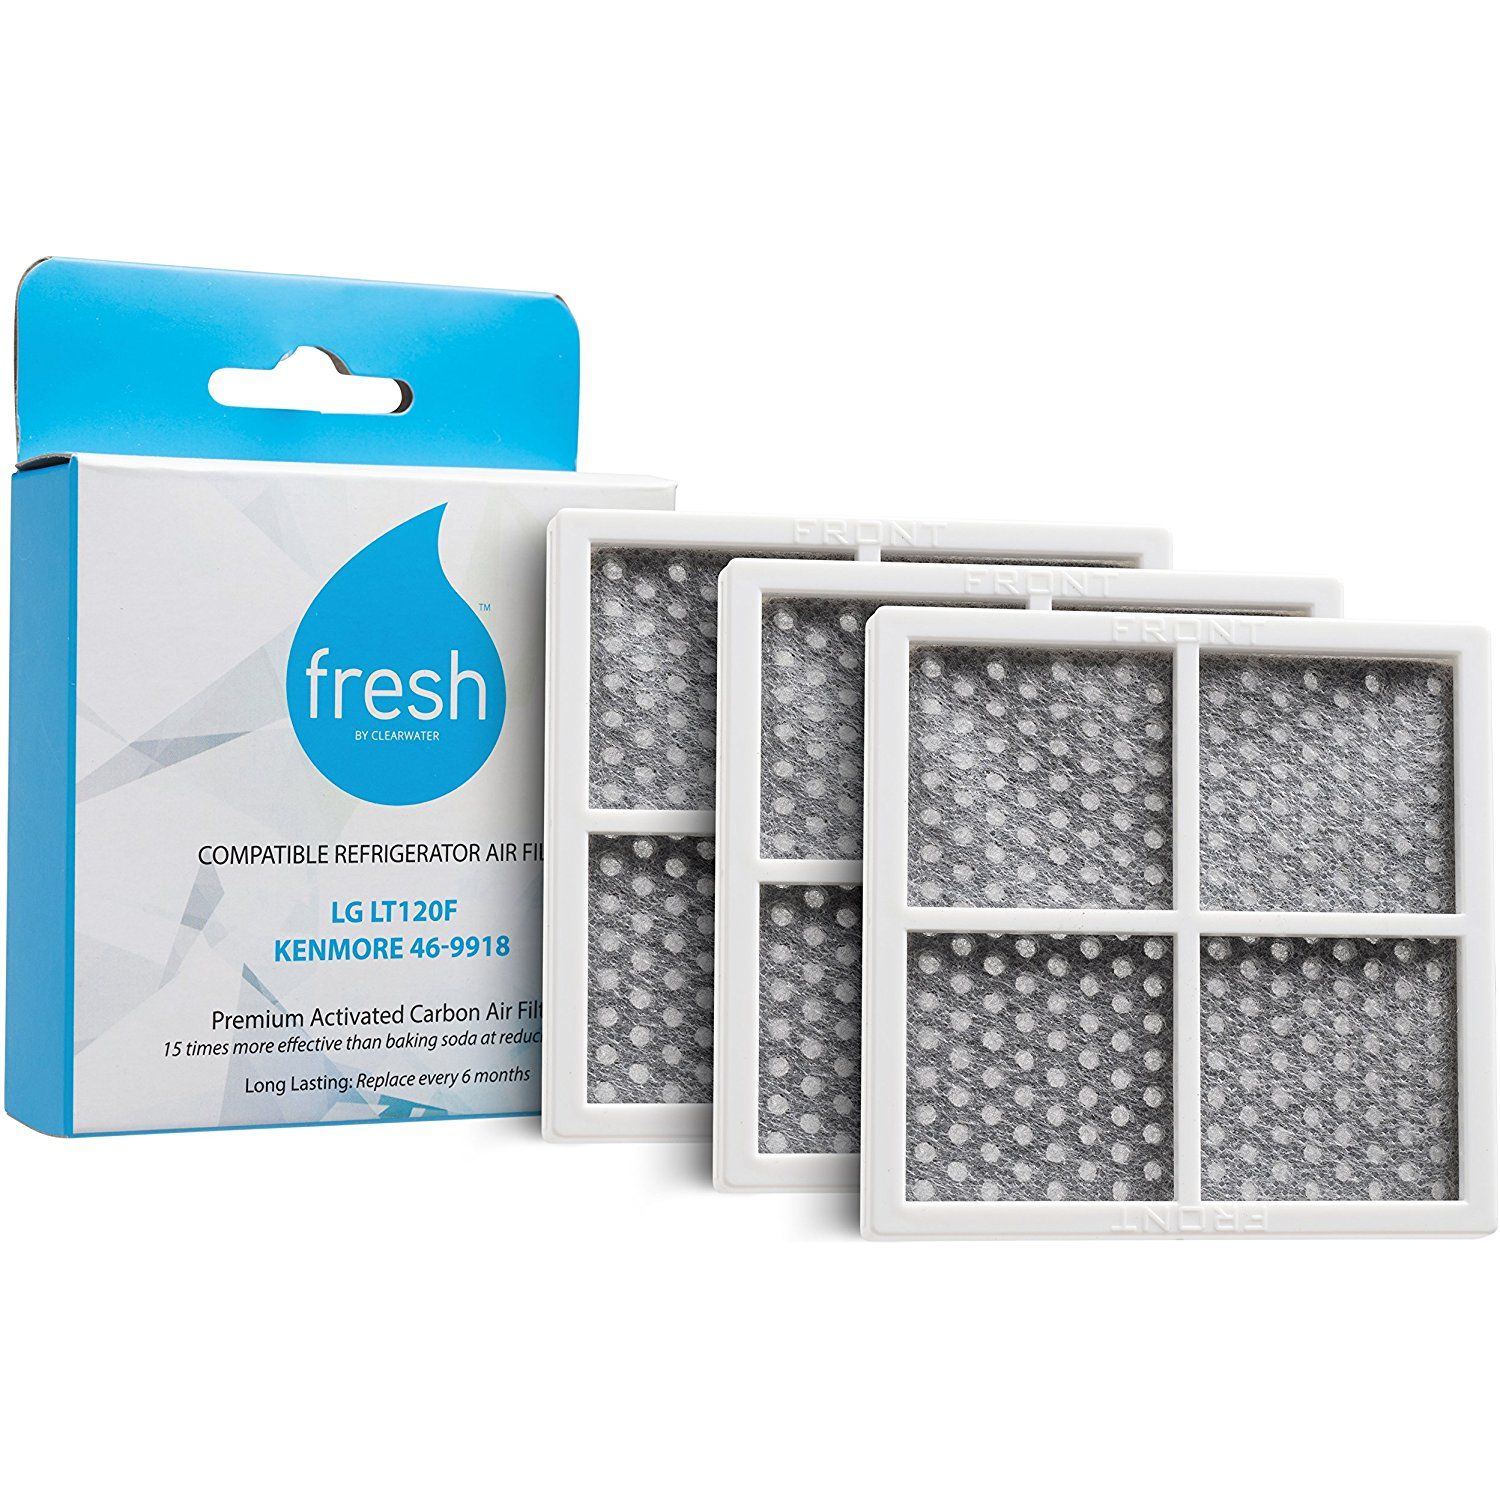 Fresh Lg Lt120f Kenmore 469918 Replacement Refrigerator Air Filter 3 Pack You Can Find More Kenmore Activated Carbon Air Filter Carbon Air Filter